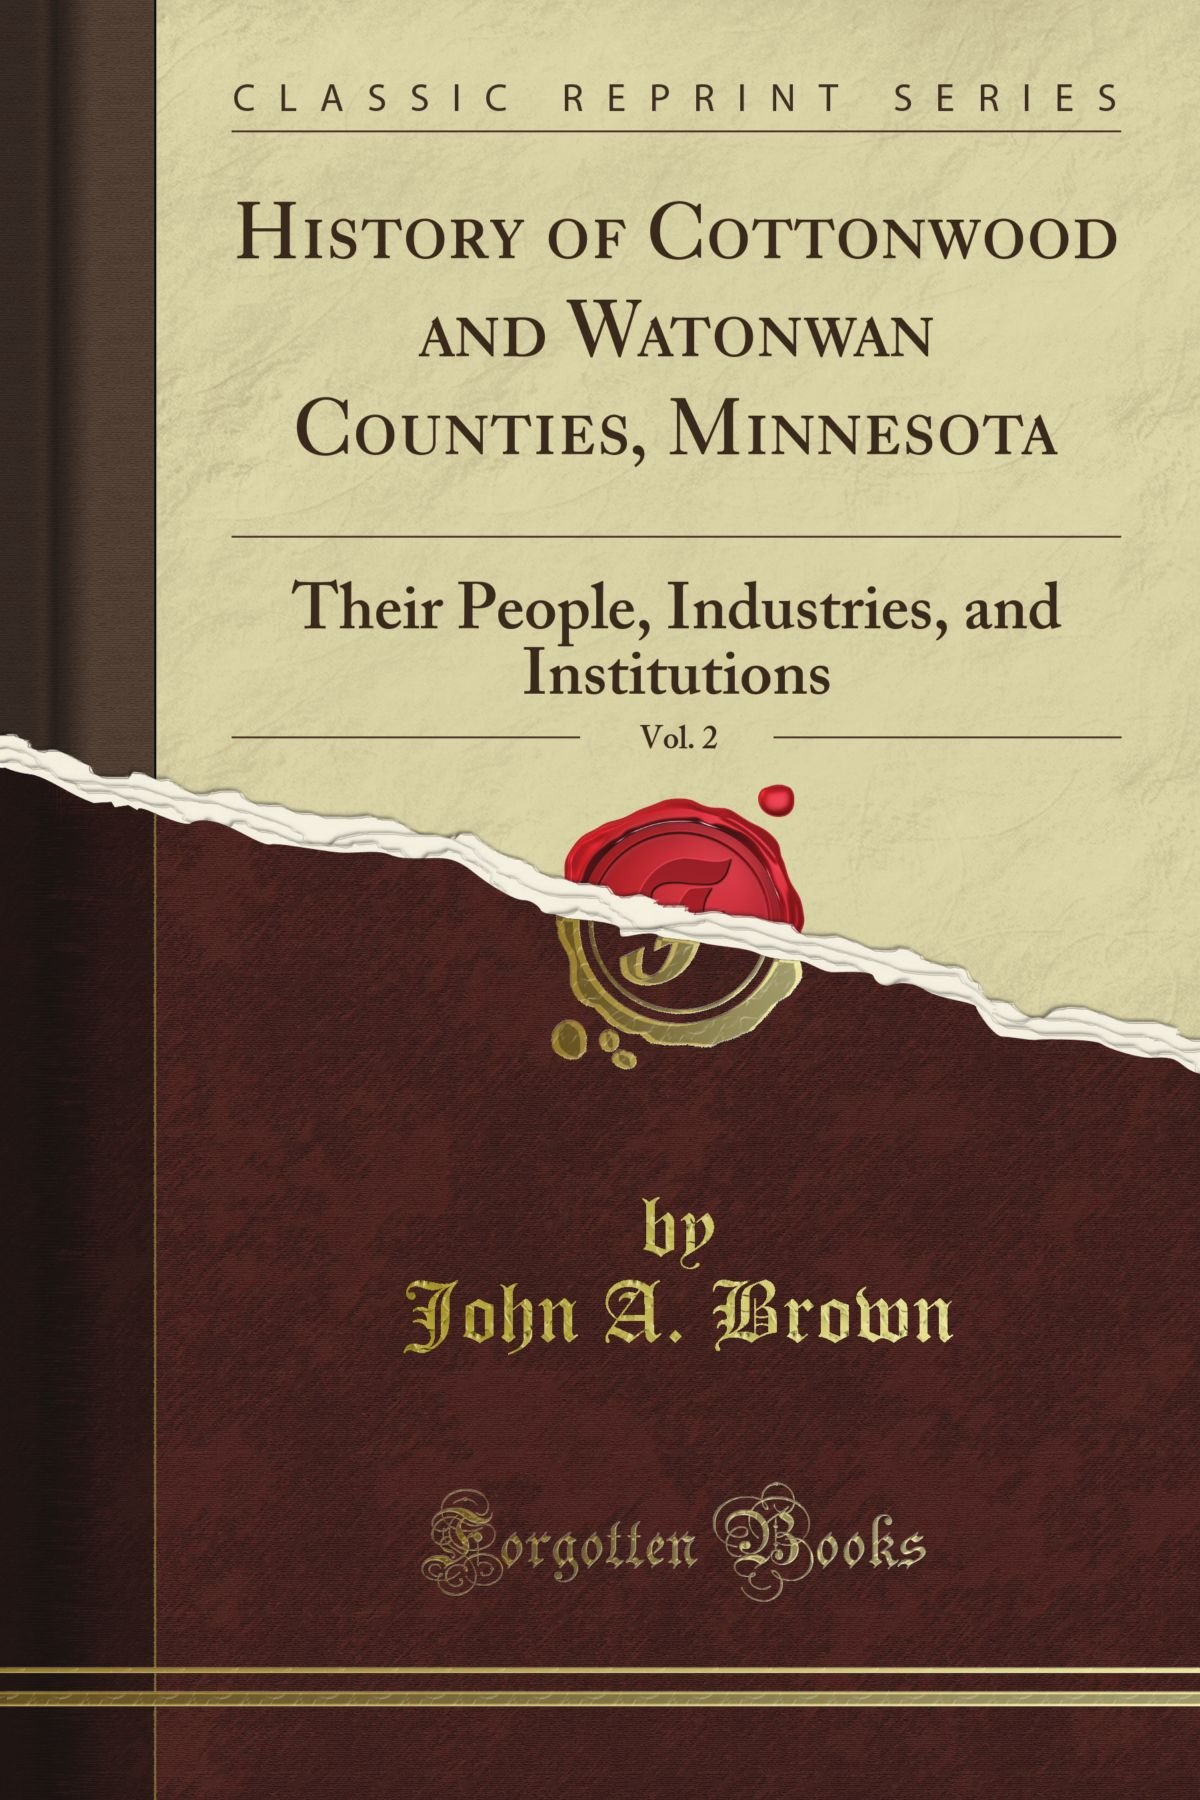 History of Cottonwood and Watonwan Counties, Minnesota: Their People, Industries, and Institutions, Vol. 2 (Classic Reprint) pdf